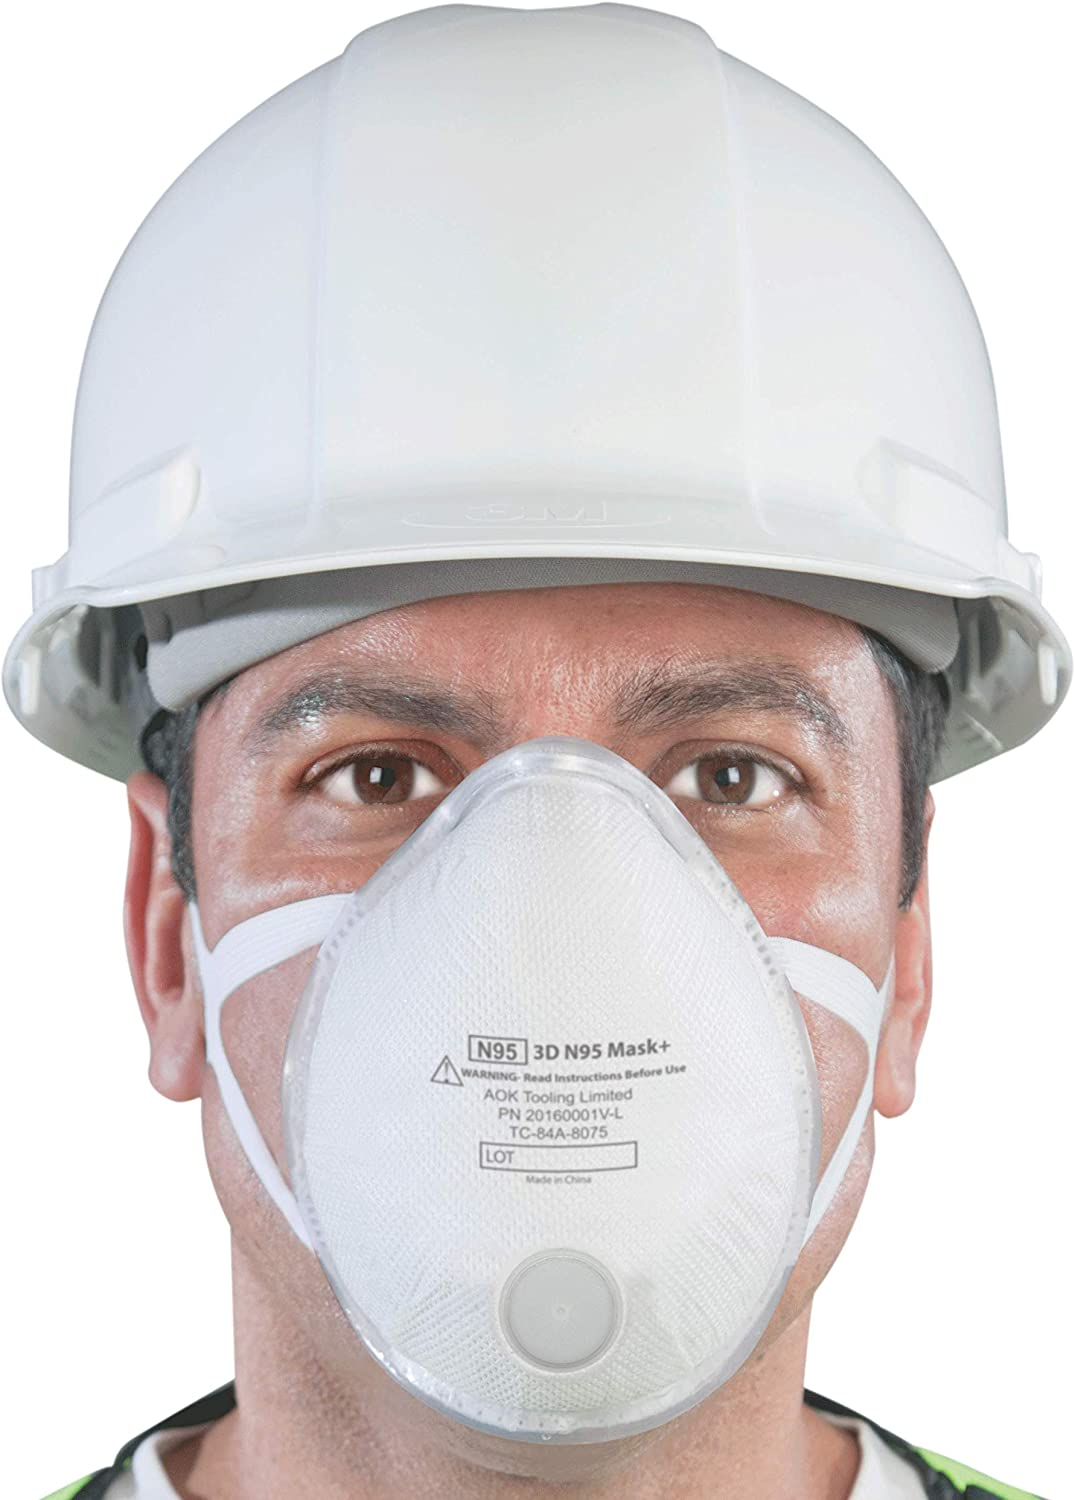 Silicone Crush Seal Filtration Sweat And For Particle Certified Fine Fit Perfect Mask 10 N95 Respirator A Pack Niosh Softseal Molding Patented